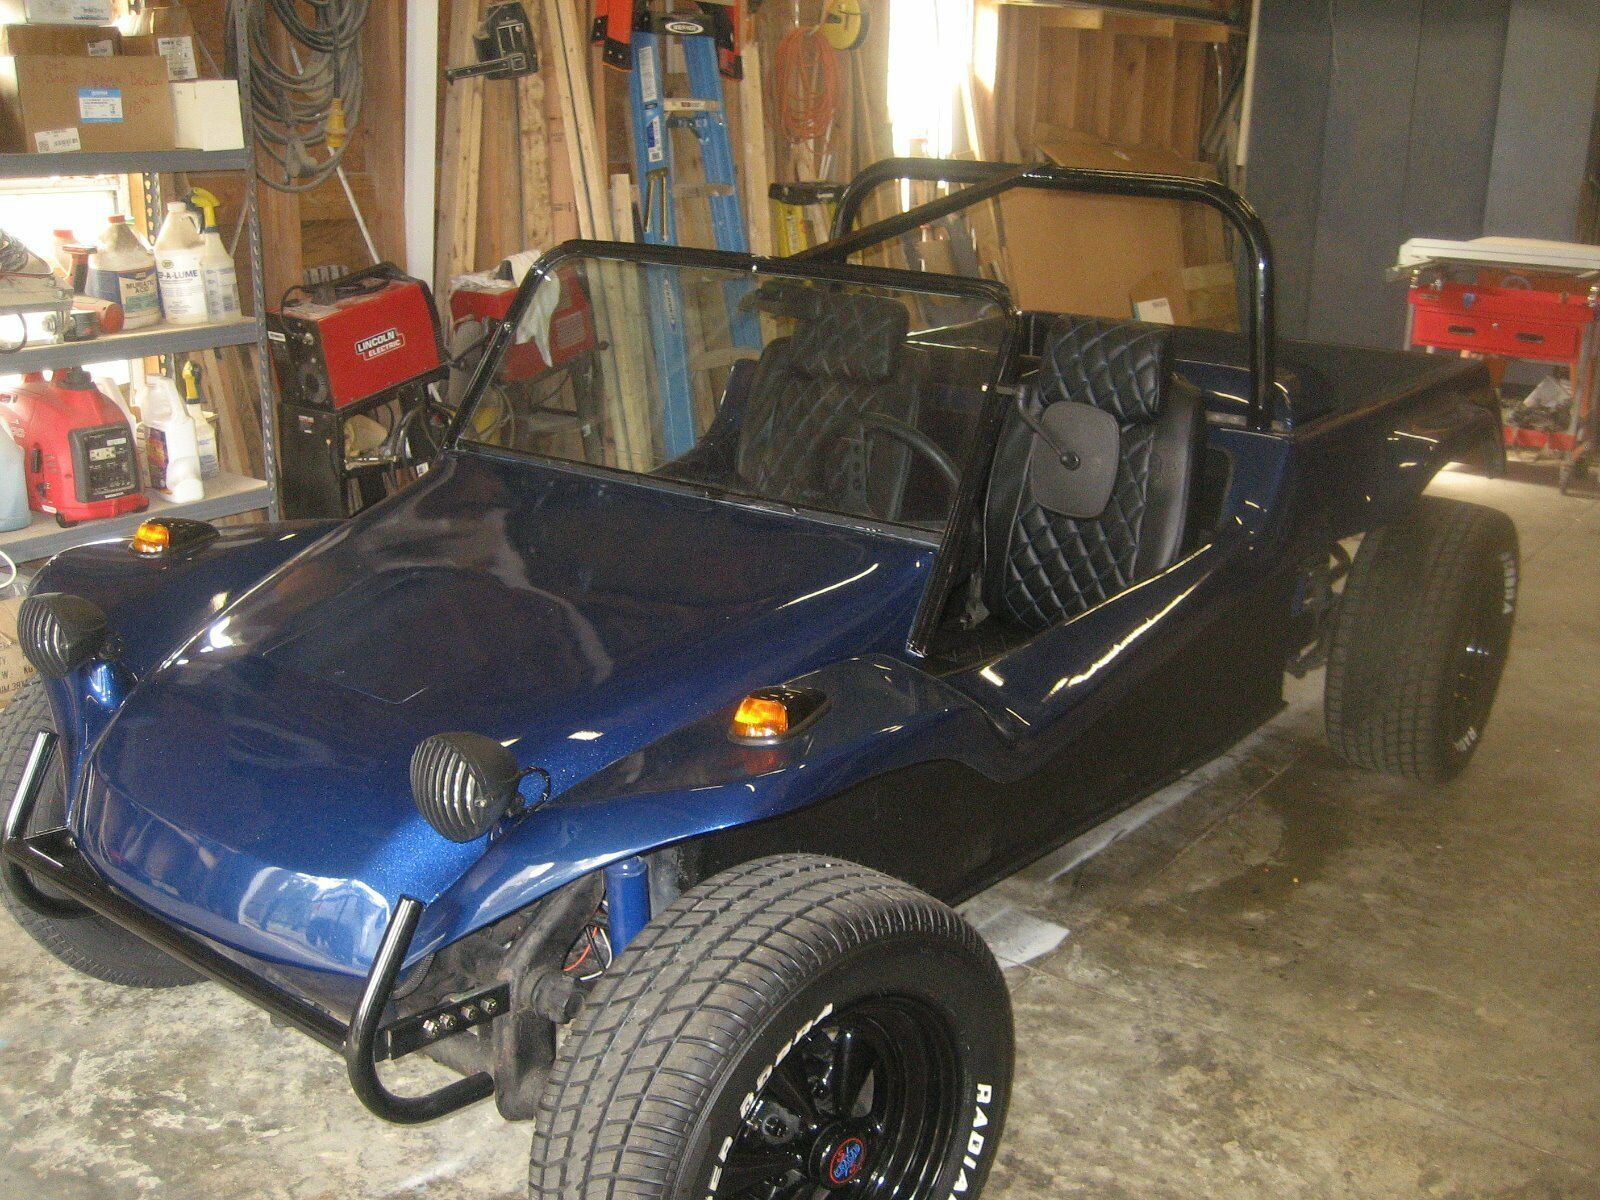 1964 vw dune buggy street legal 1 of 6 See More